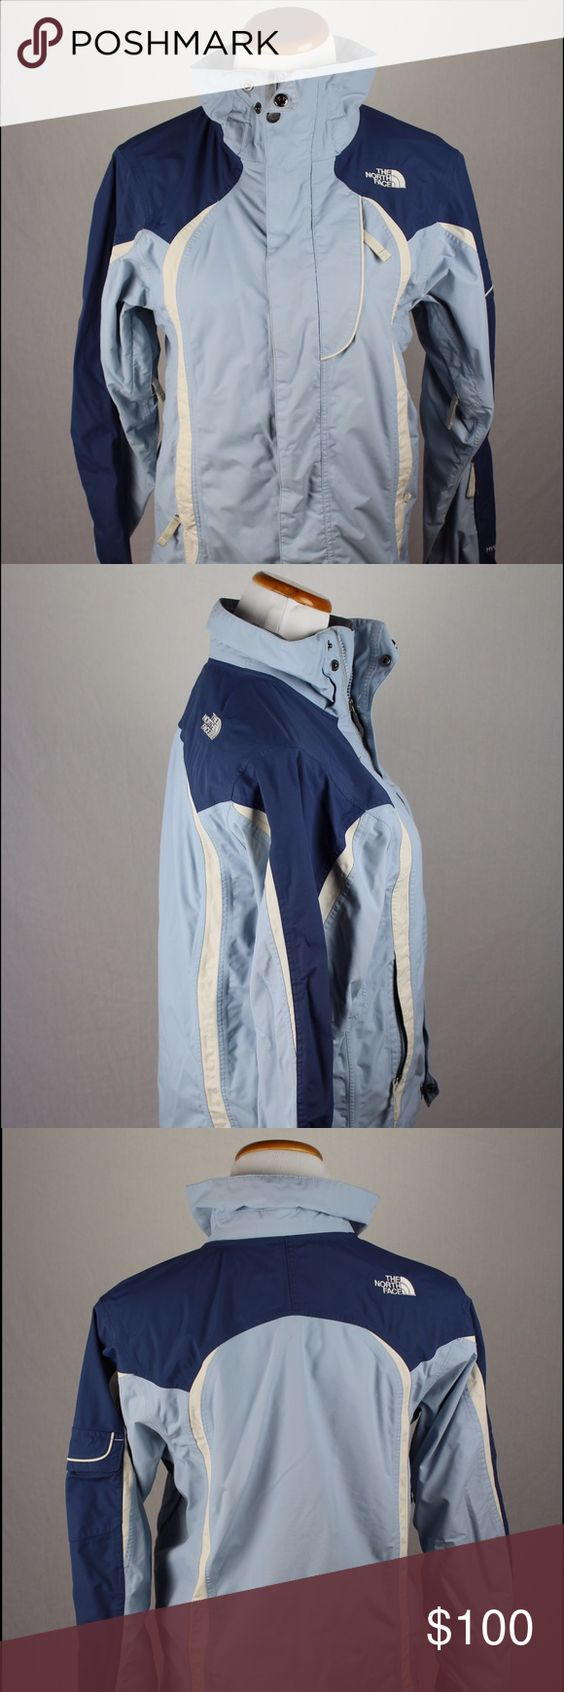 North Face Women's Windbreaker Jacket Female small blue North Face windbreaker jacket. This North Face windbreaker jacket was hand picked and professionally cleaned before selling it to you! SKU in warehouse is # 532. North Face Jackets & Coats